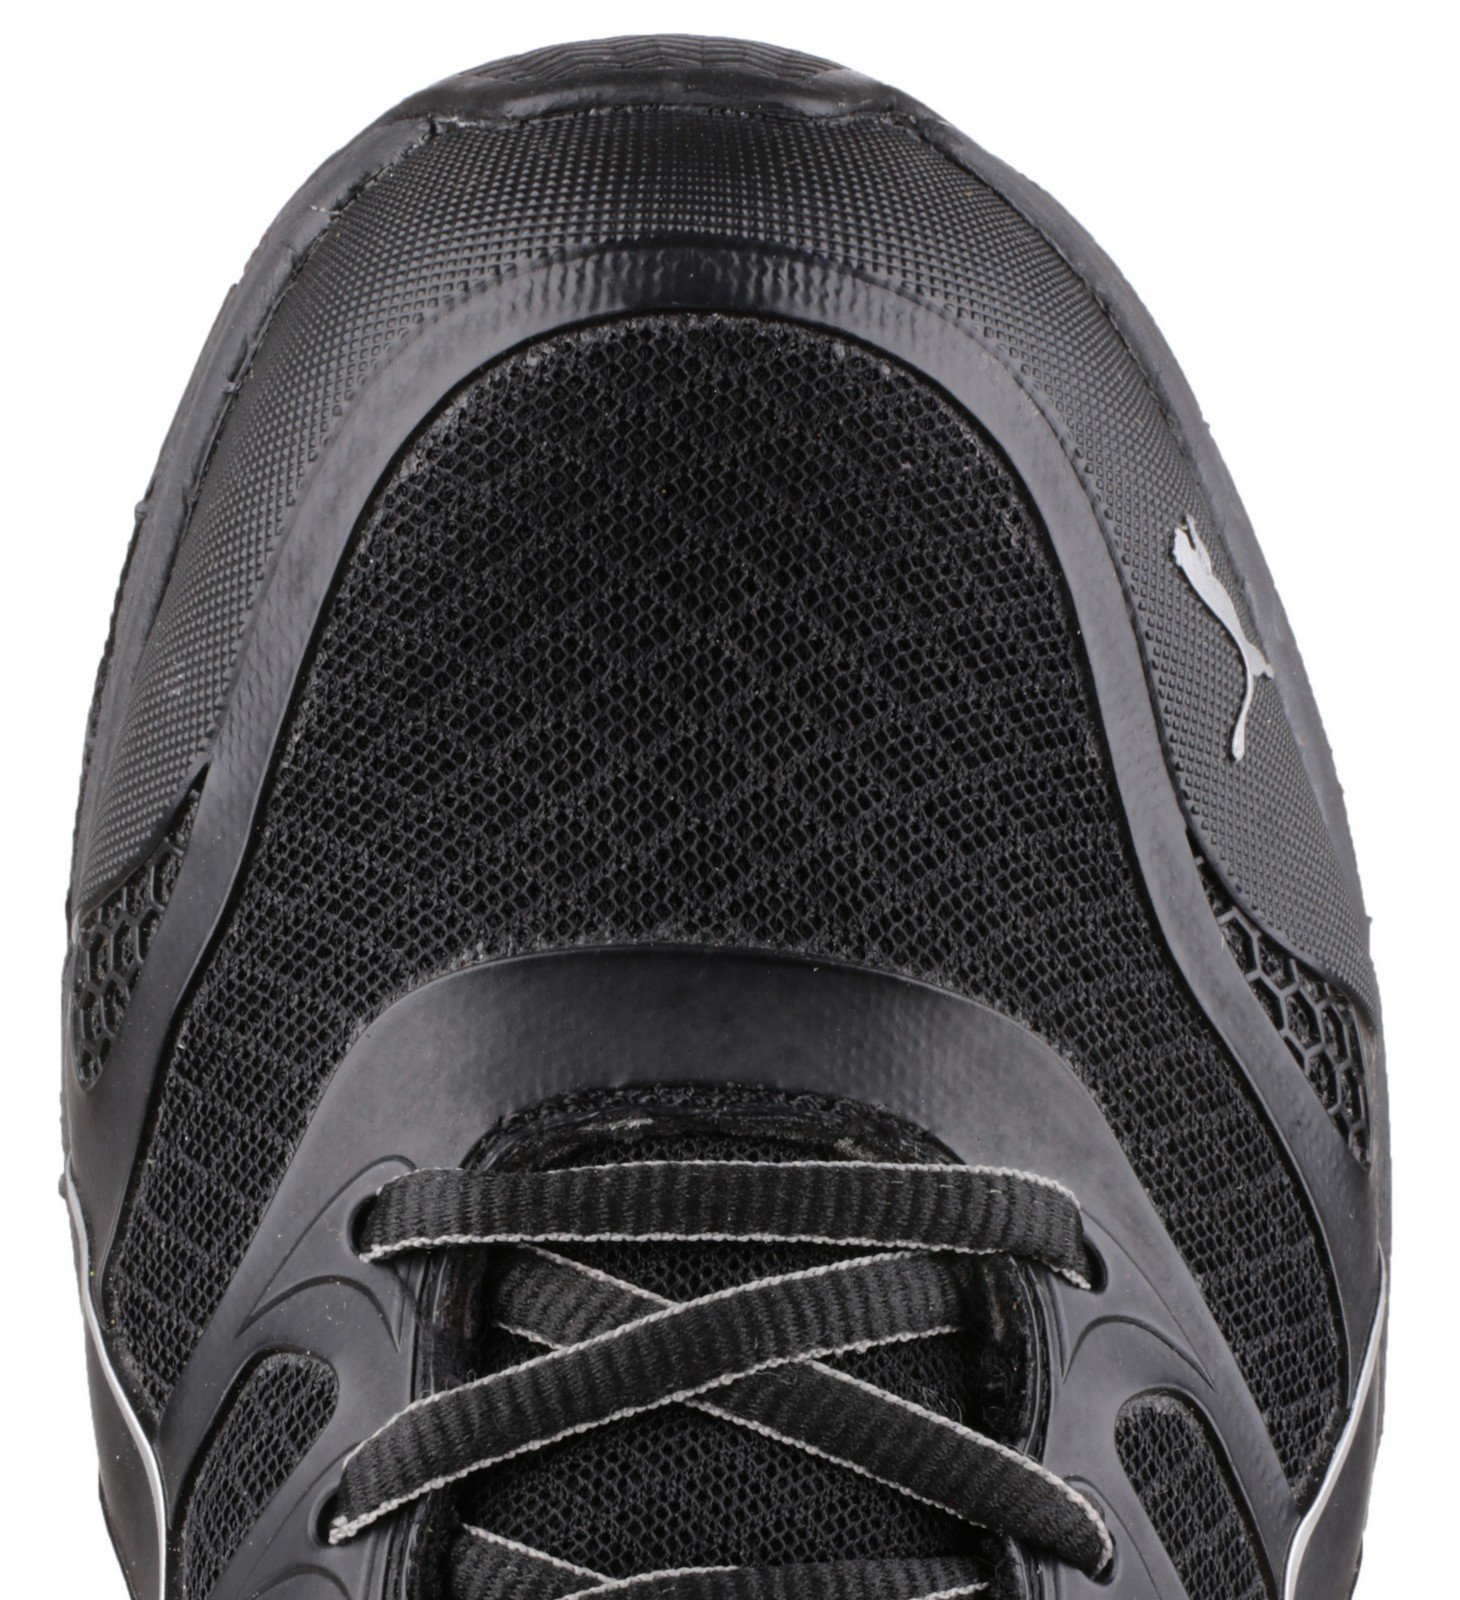 Puma Fuse Motion Black Low Safety Boot (EUR 46 US 12) by -puma (Image #4)